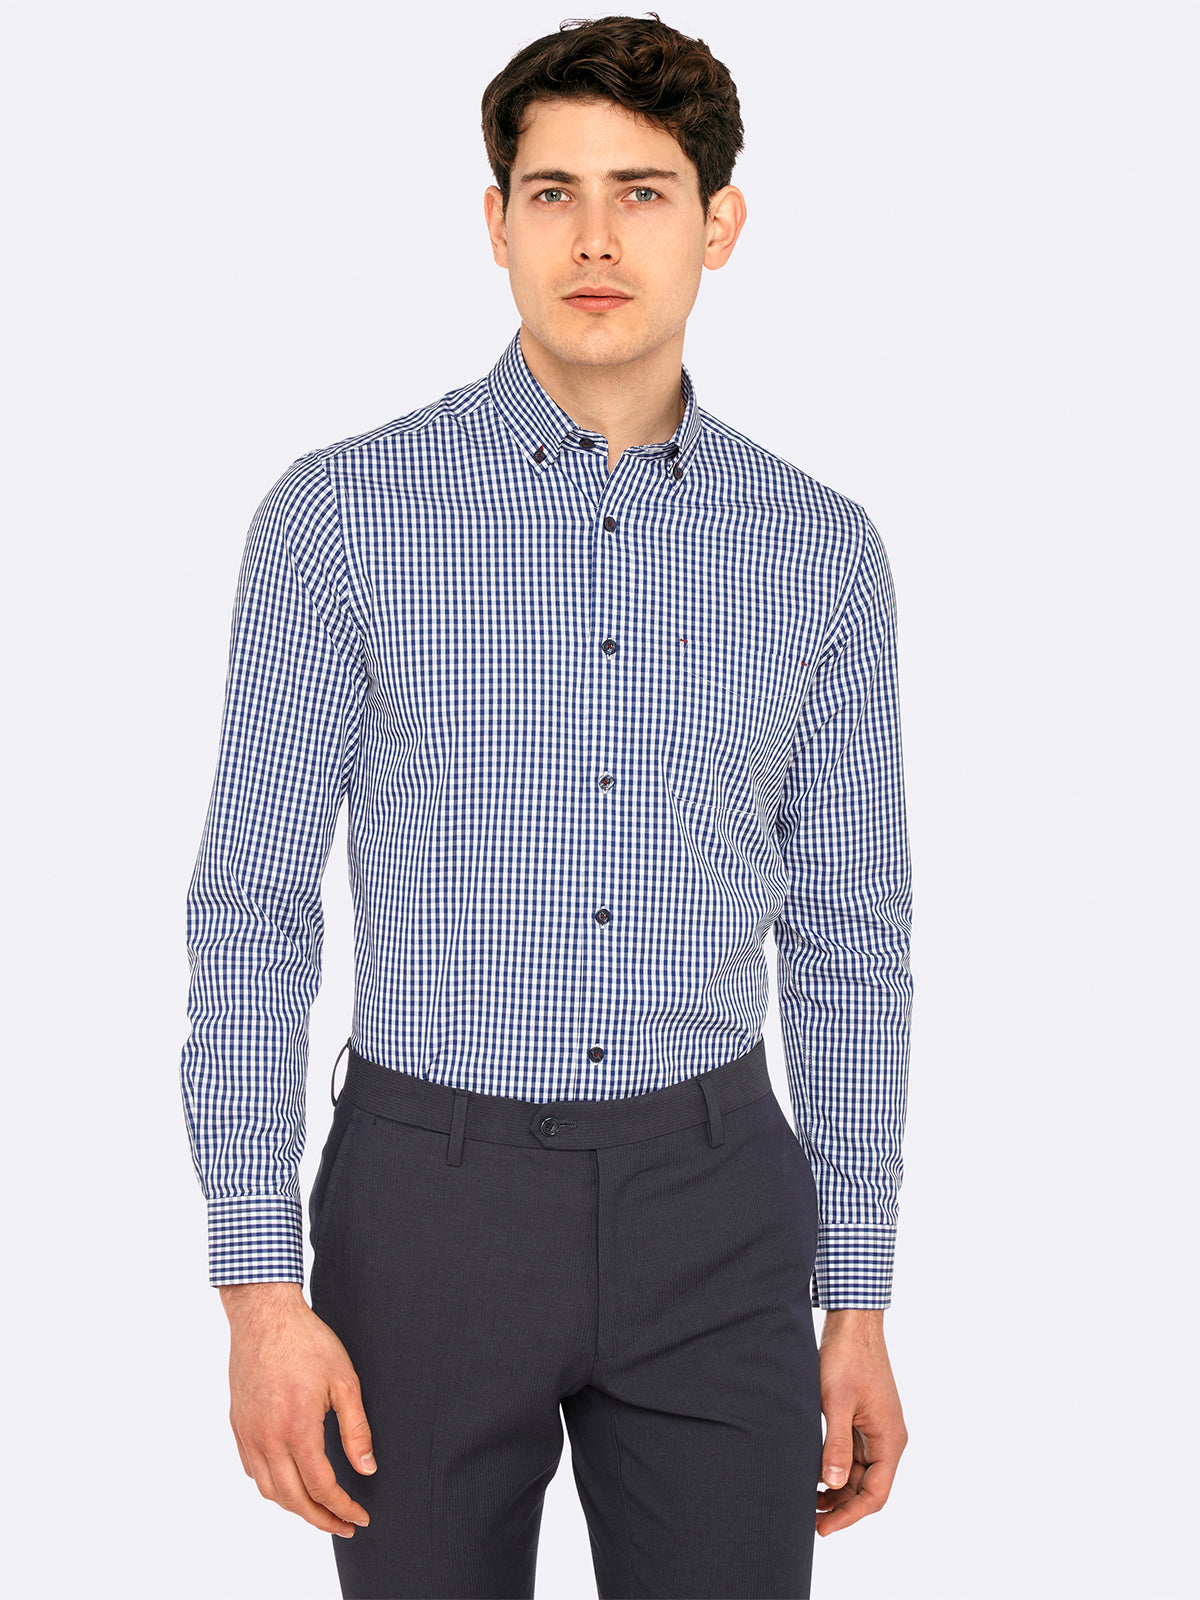 STRATTON CHECKED SHIRT CHARCOALX